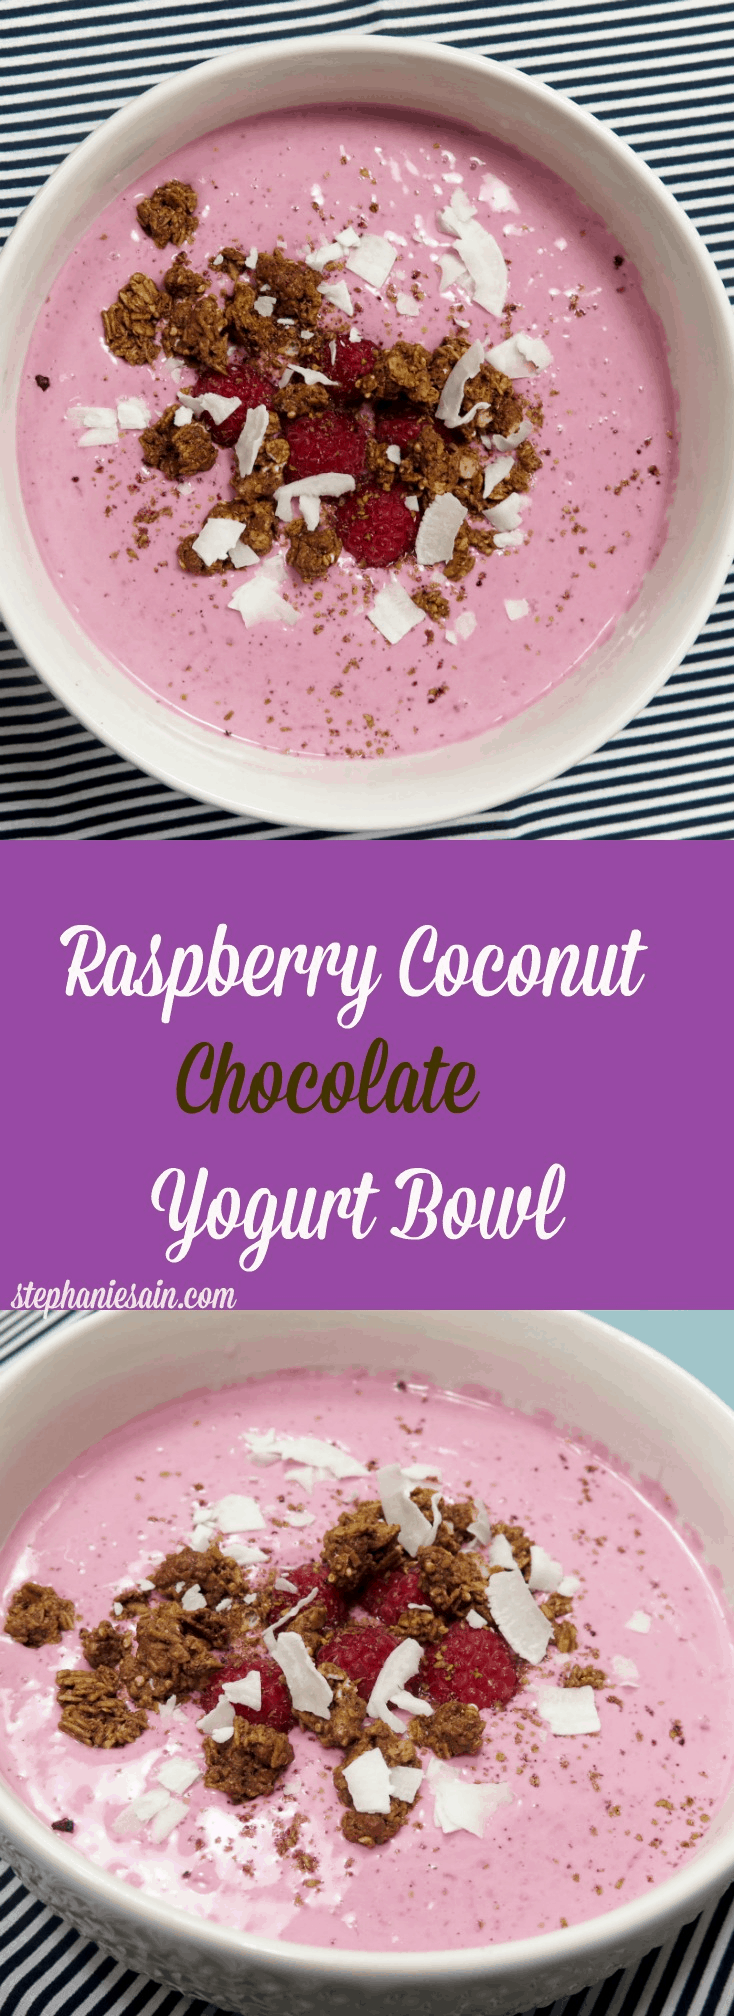 Raspberry Coconut Chocolate Yogurt Bowl is a healthy, tasty, snack or breakfast. Vegetarian and Gluten Free.